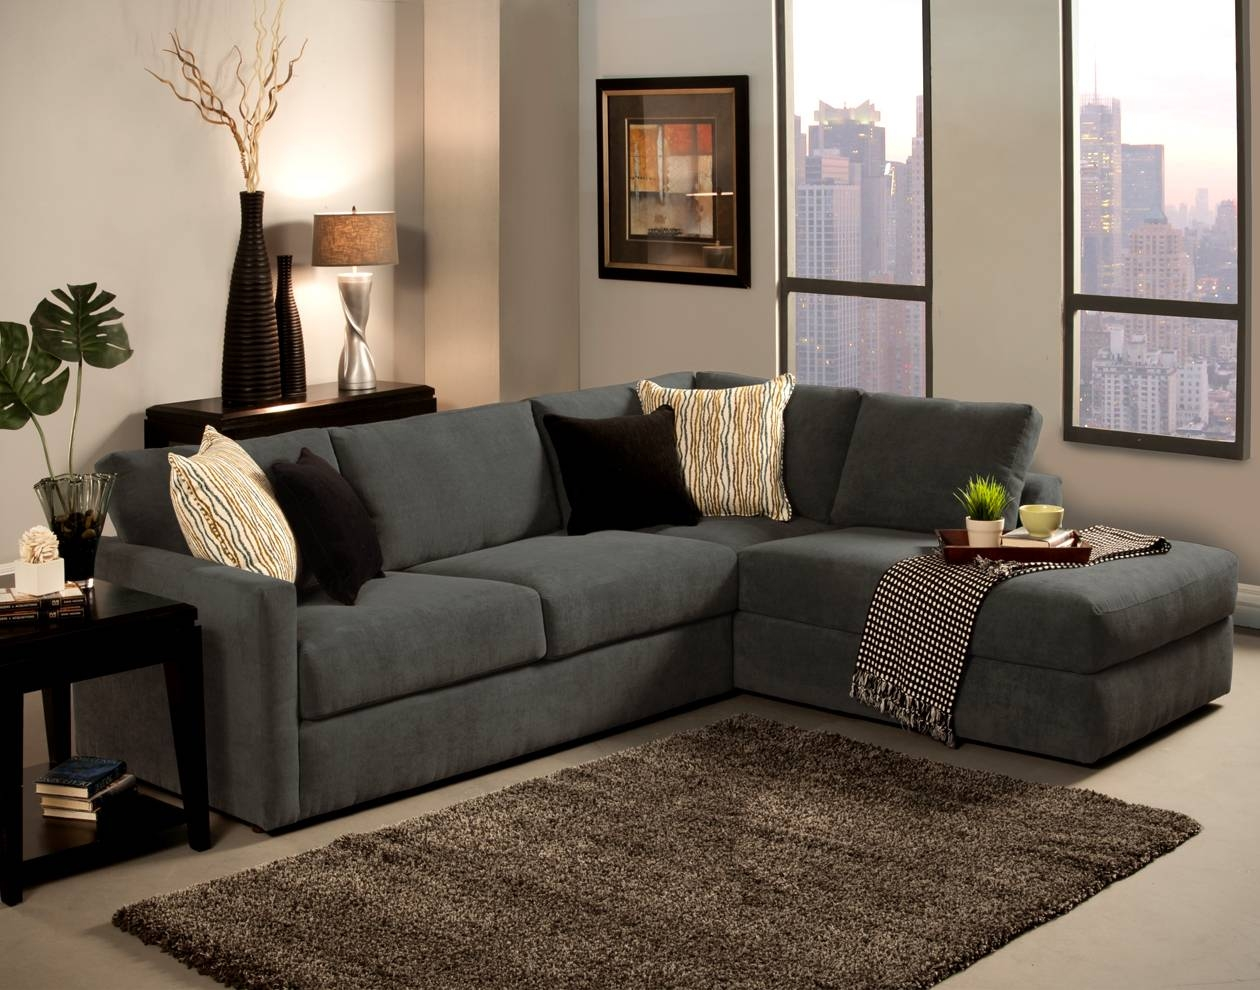 Amazing Small Sectional Sofa With Chaise Lounge 77 With Additional pertaining to Sofas and Chaises Lounge Sets (Image 1 of 15)